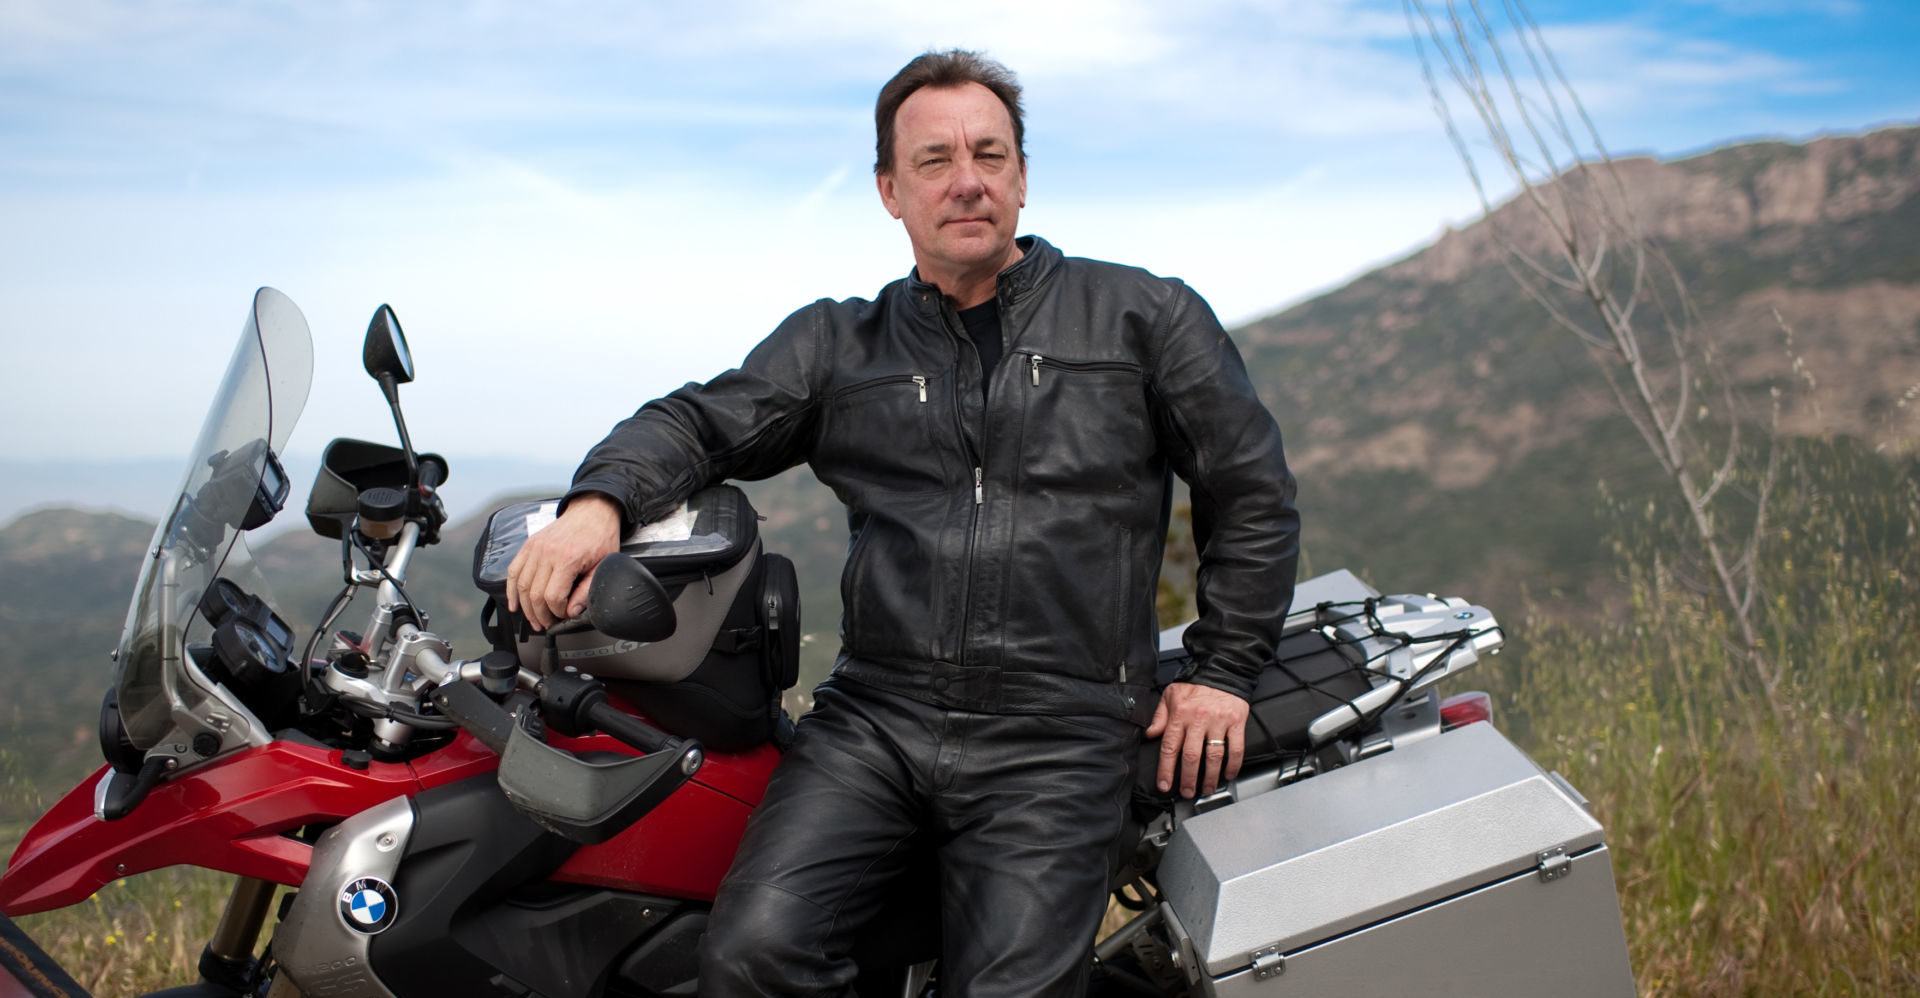 Neil Peart (R.I.P.). Photo by Holly Carlyle, courtesy of American Motorcyclist Association.